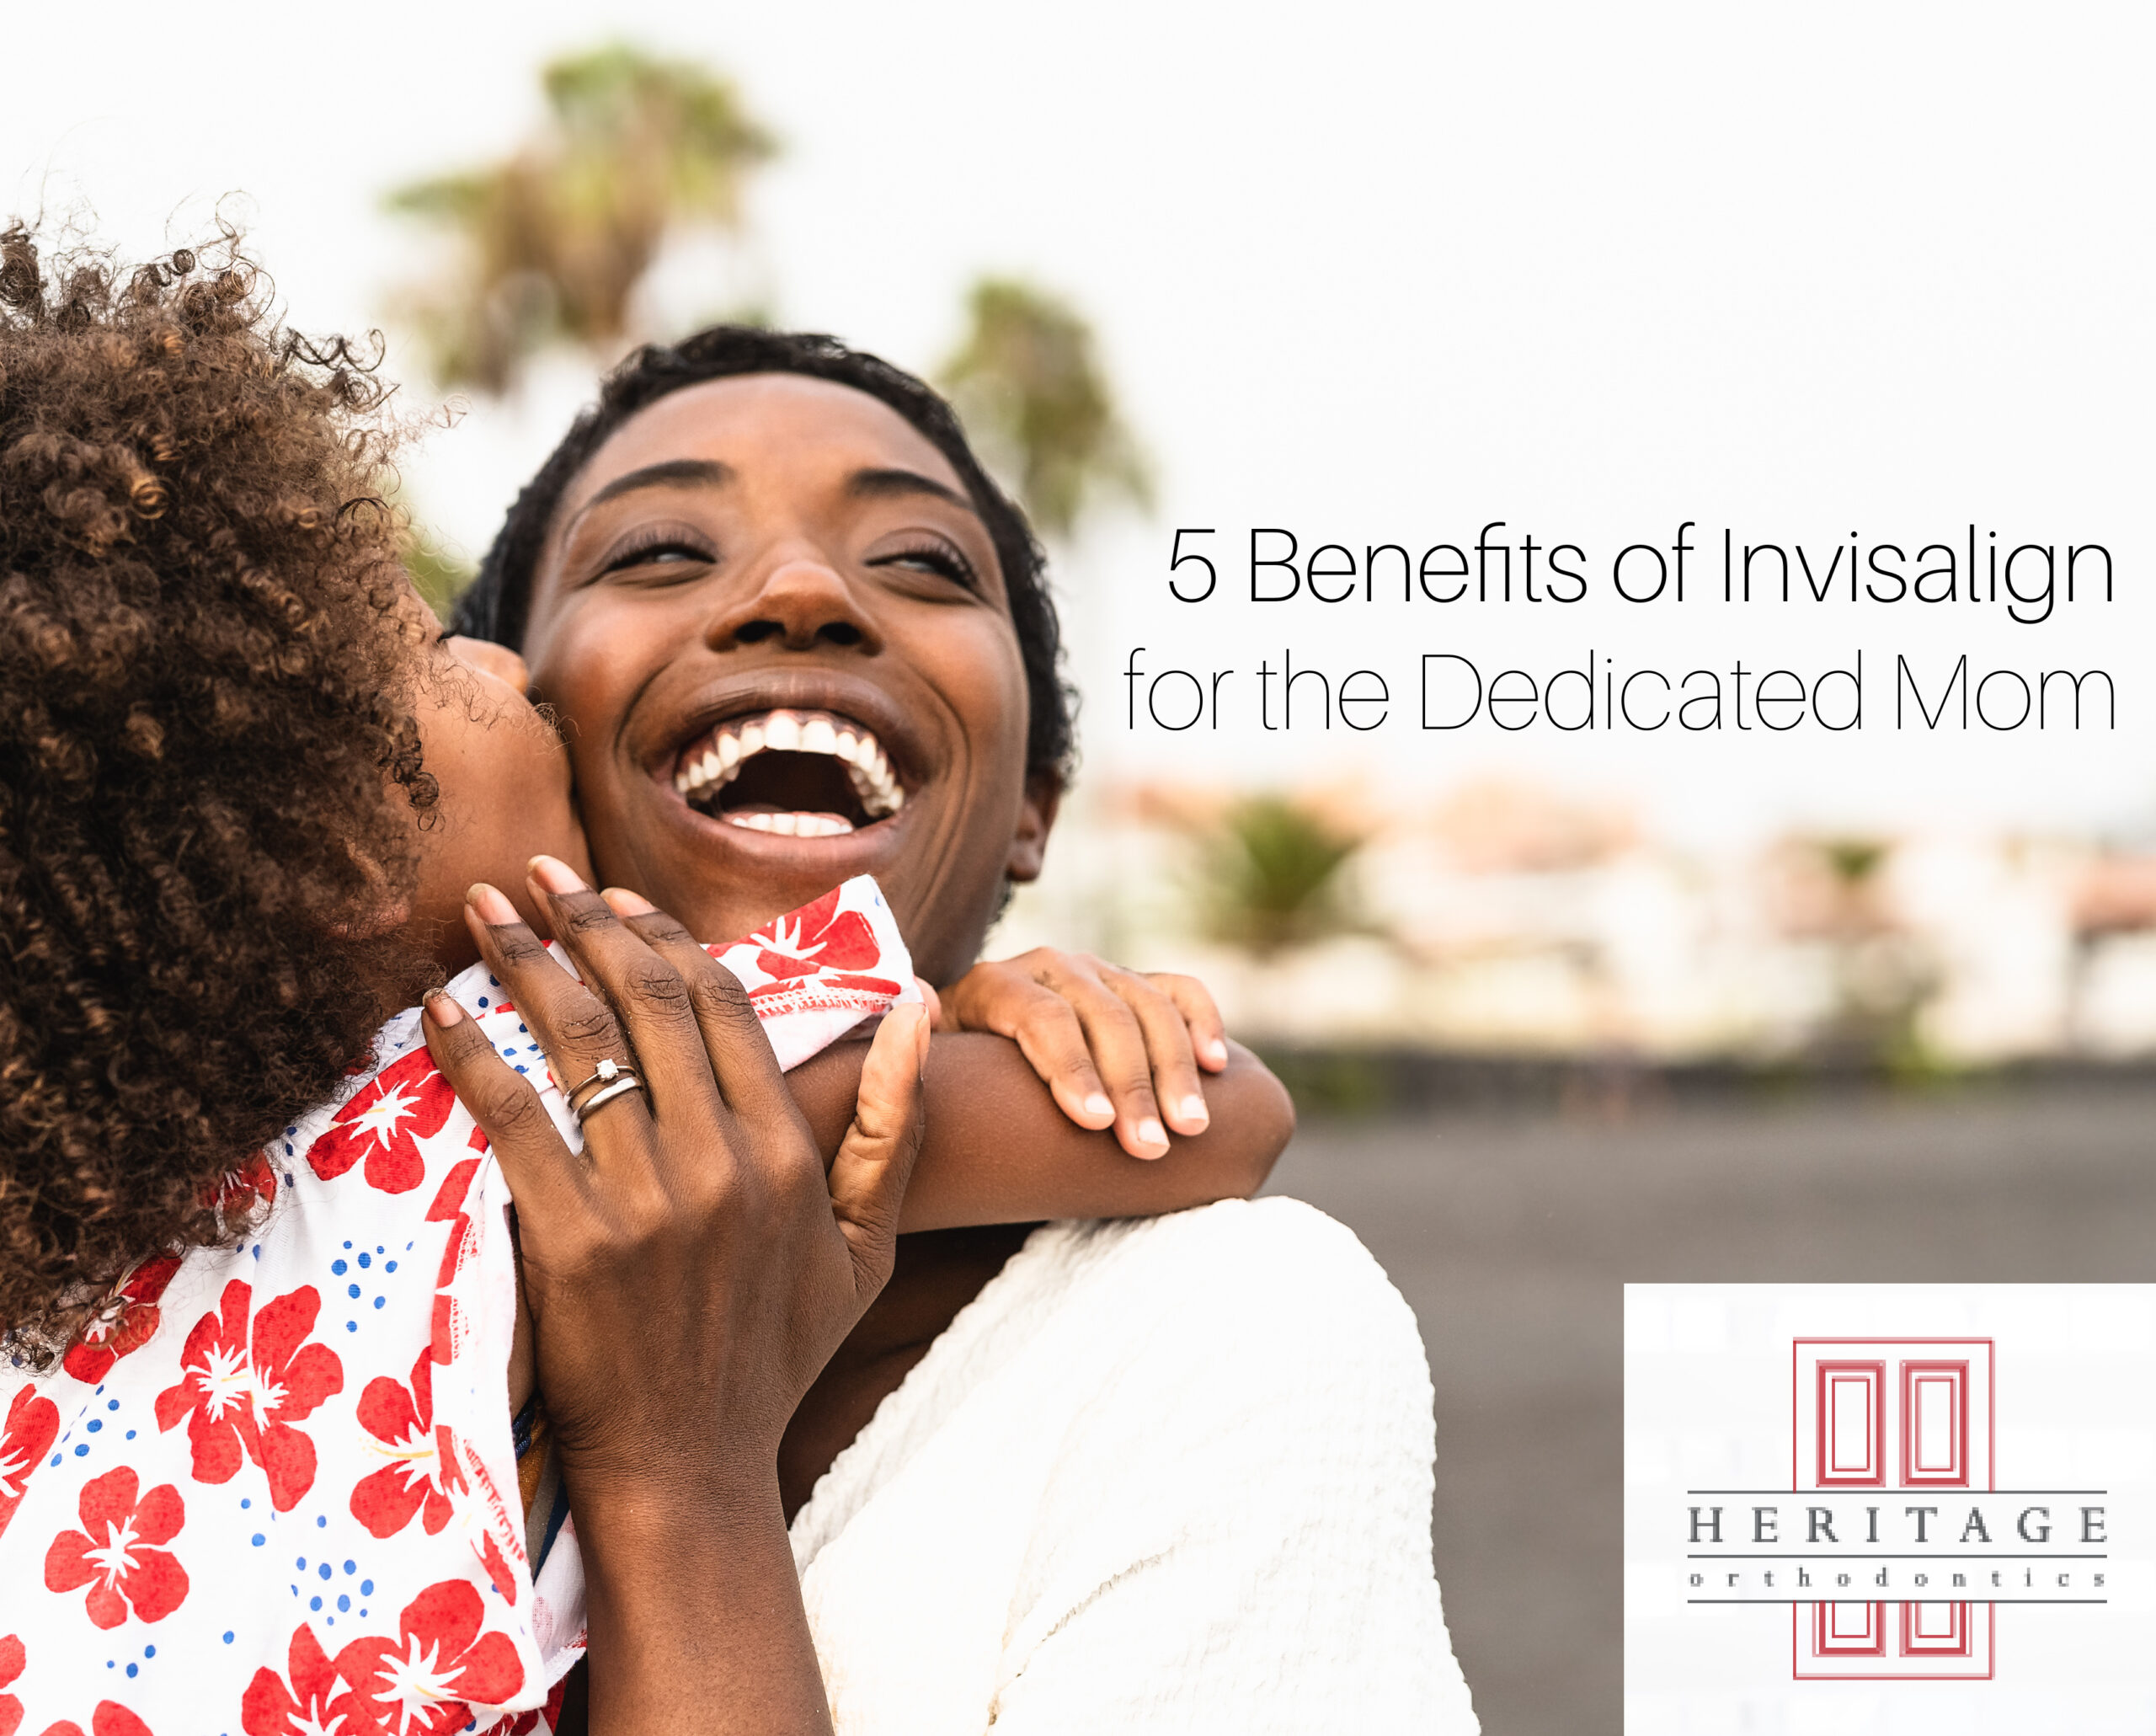 5 Benefits of Invisalign for the Busy Mom